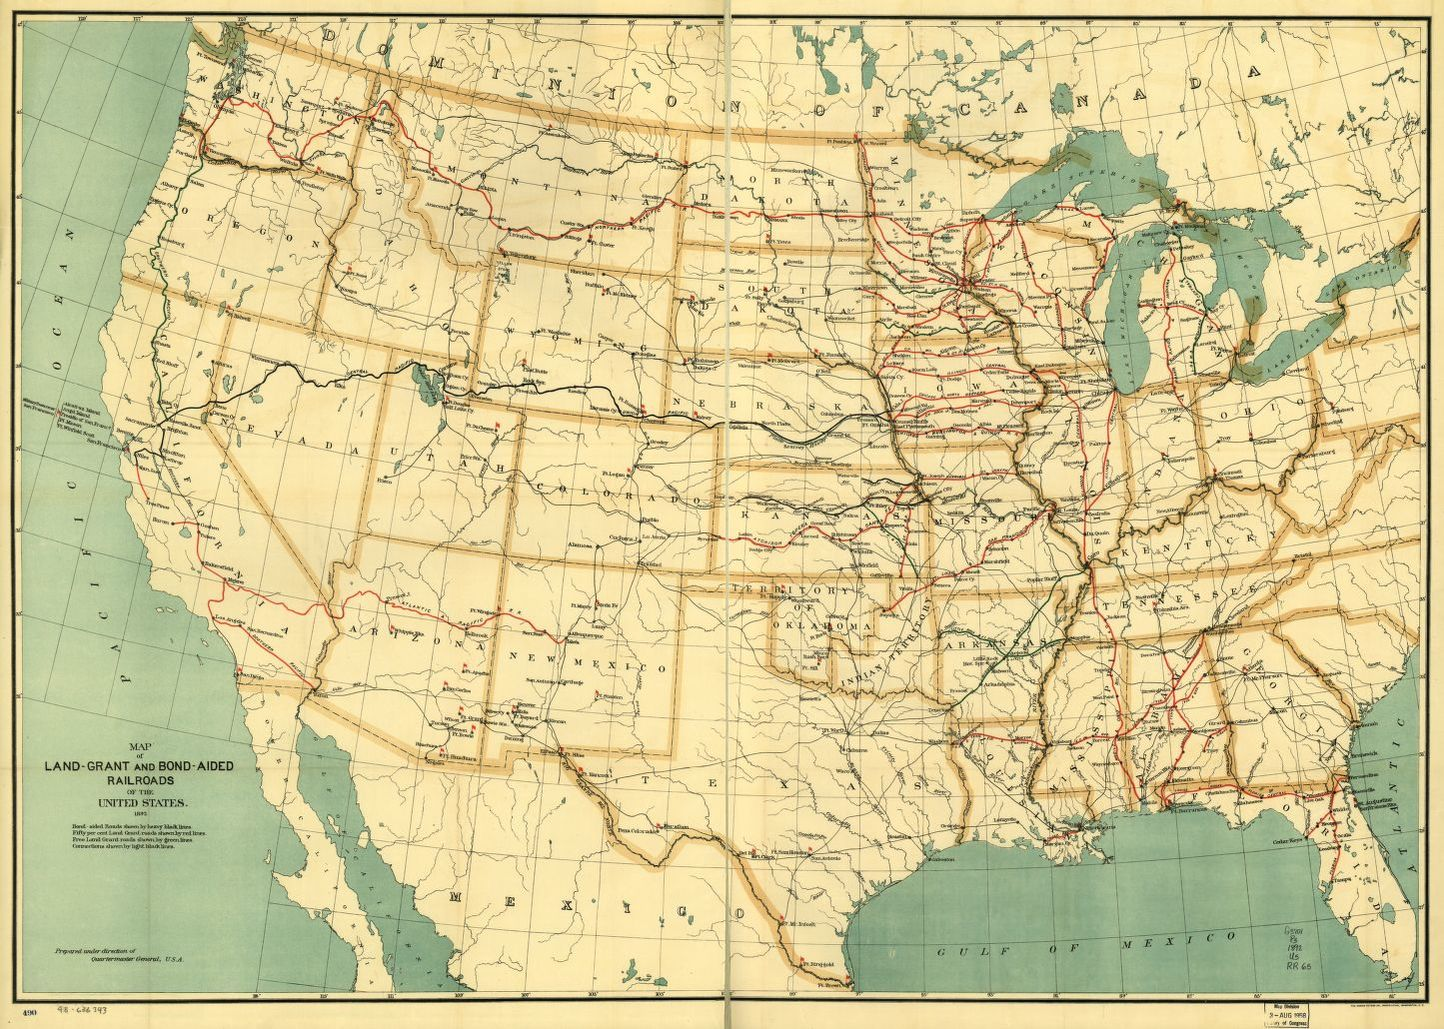 Map Of Land Grant And Bond Aided Railroads Of The United